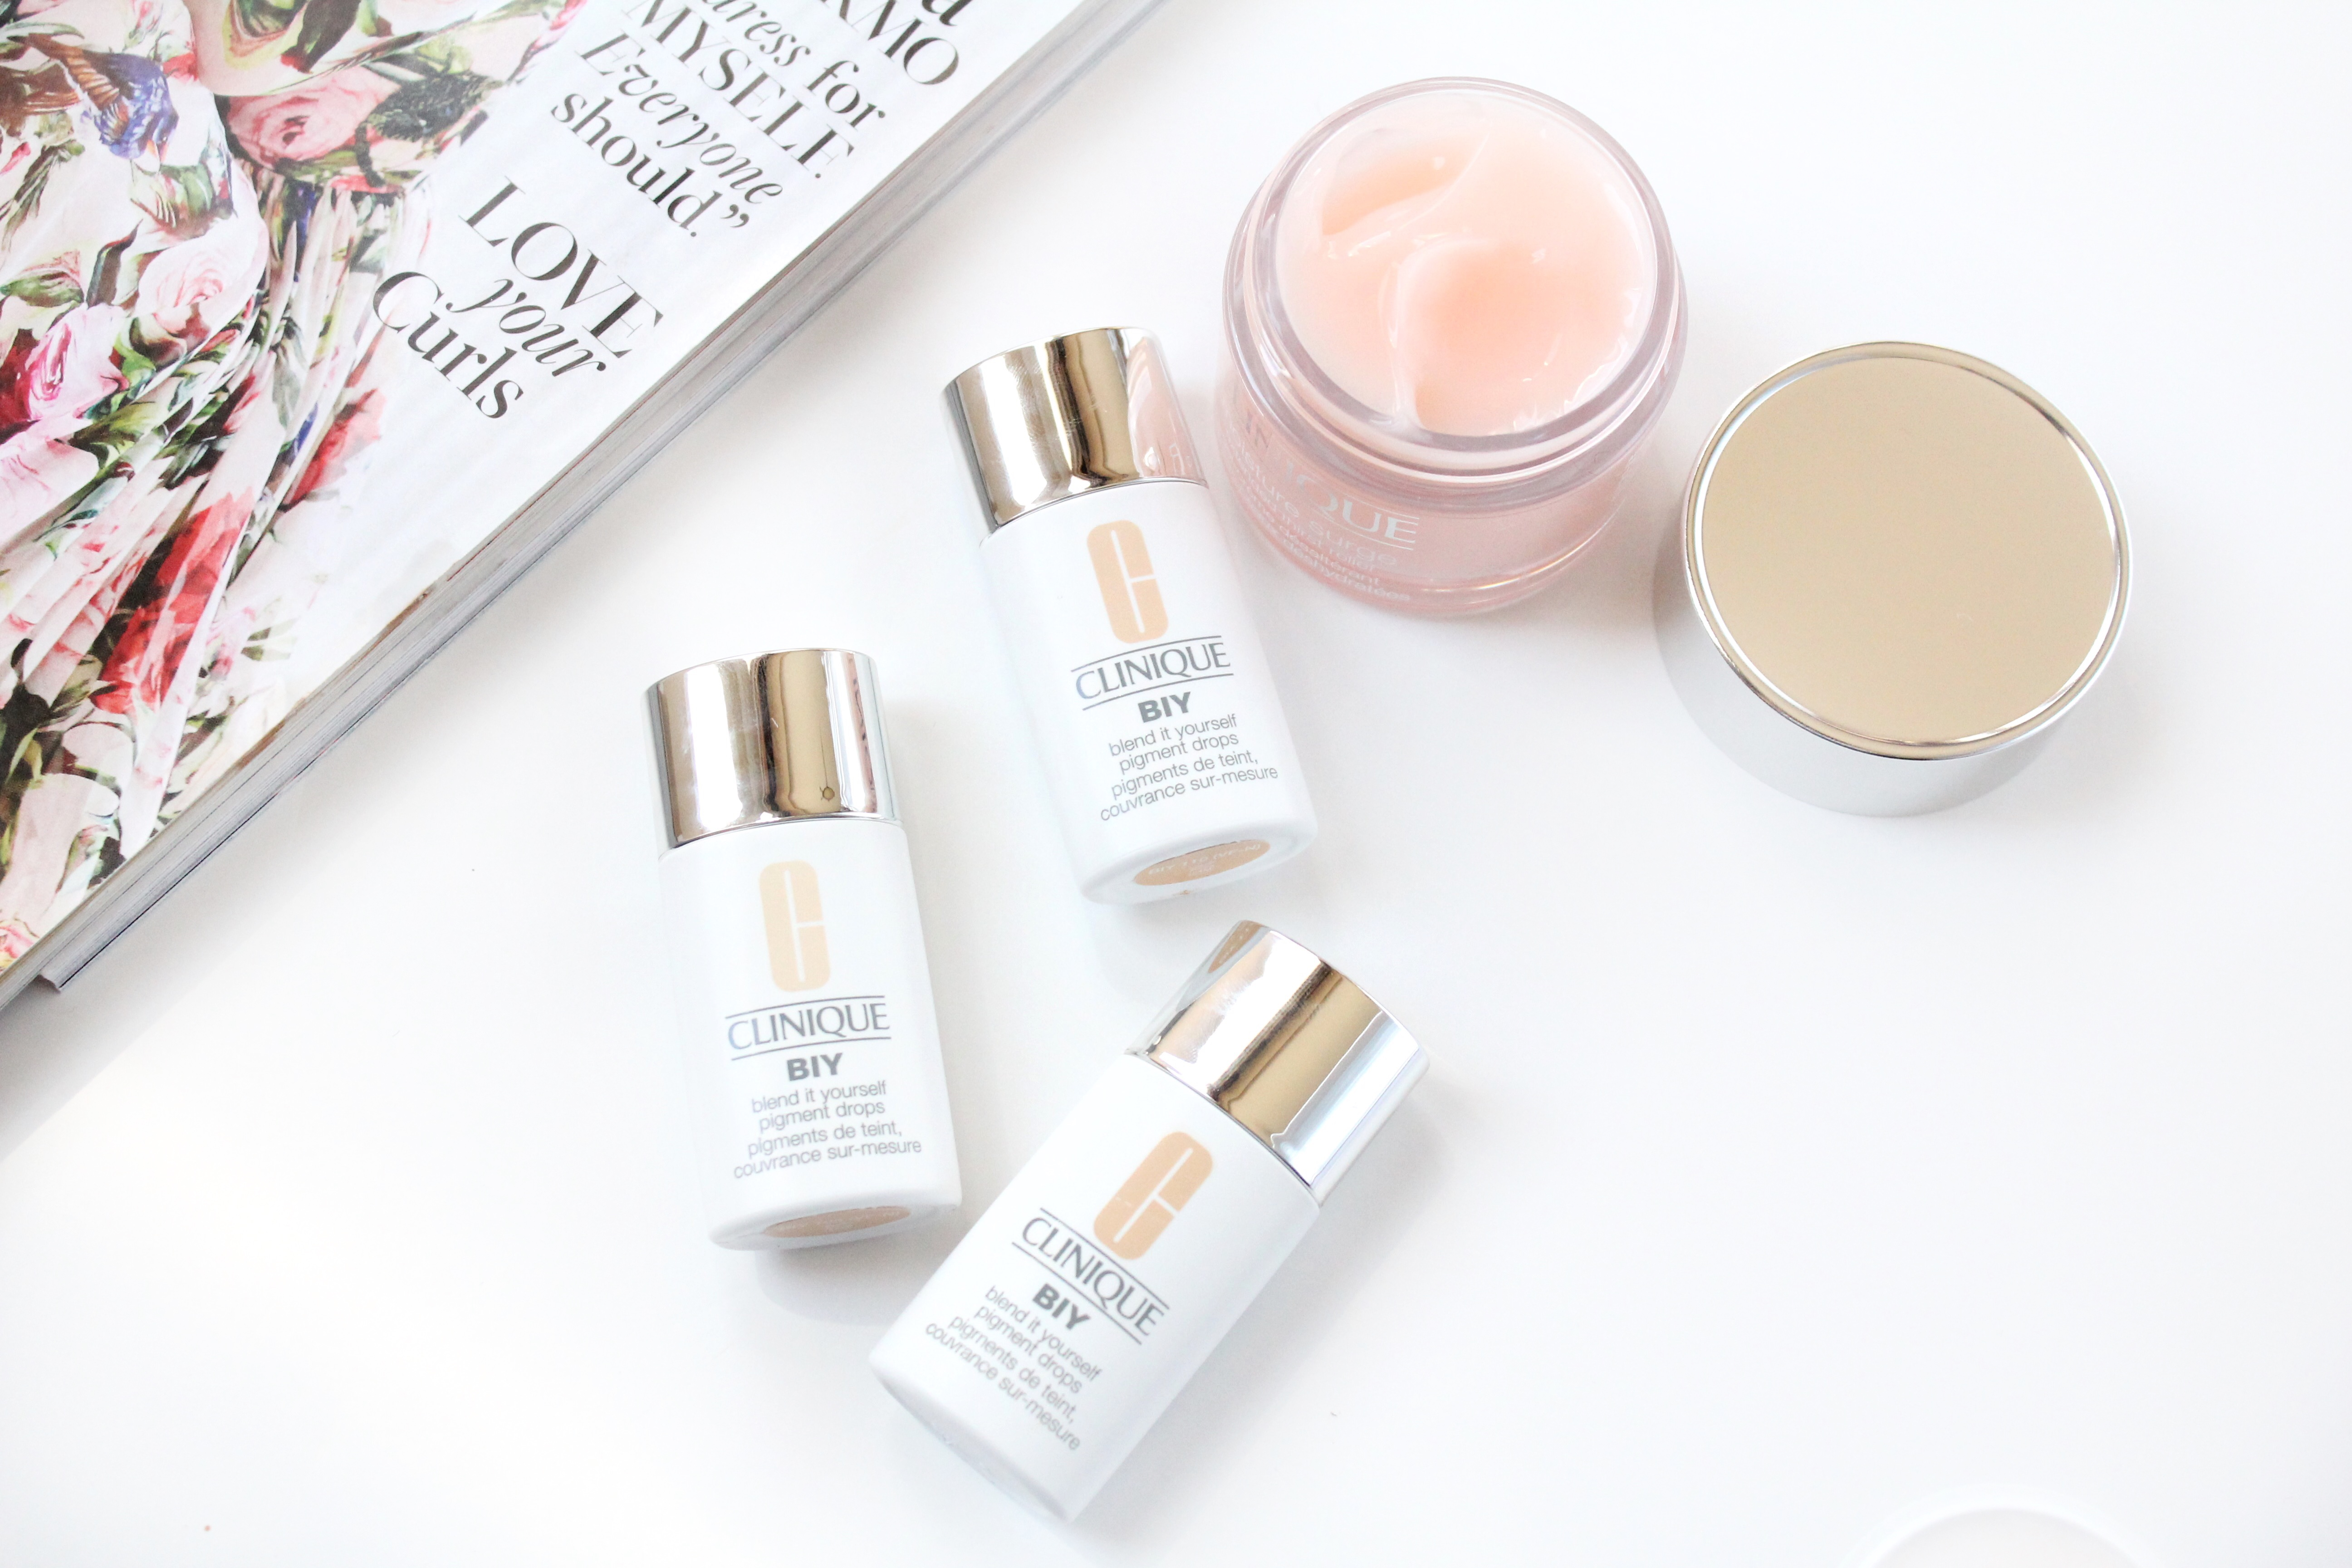 Clinique biy blend it yourself pigment drops million idole i think its perfect for those whose on the go i like the idea and the fact that it takes less time to do your makeup solutioingenieria Images